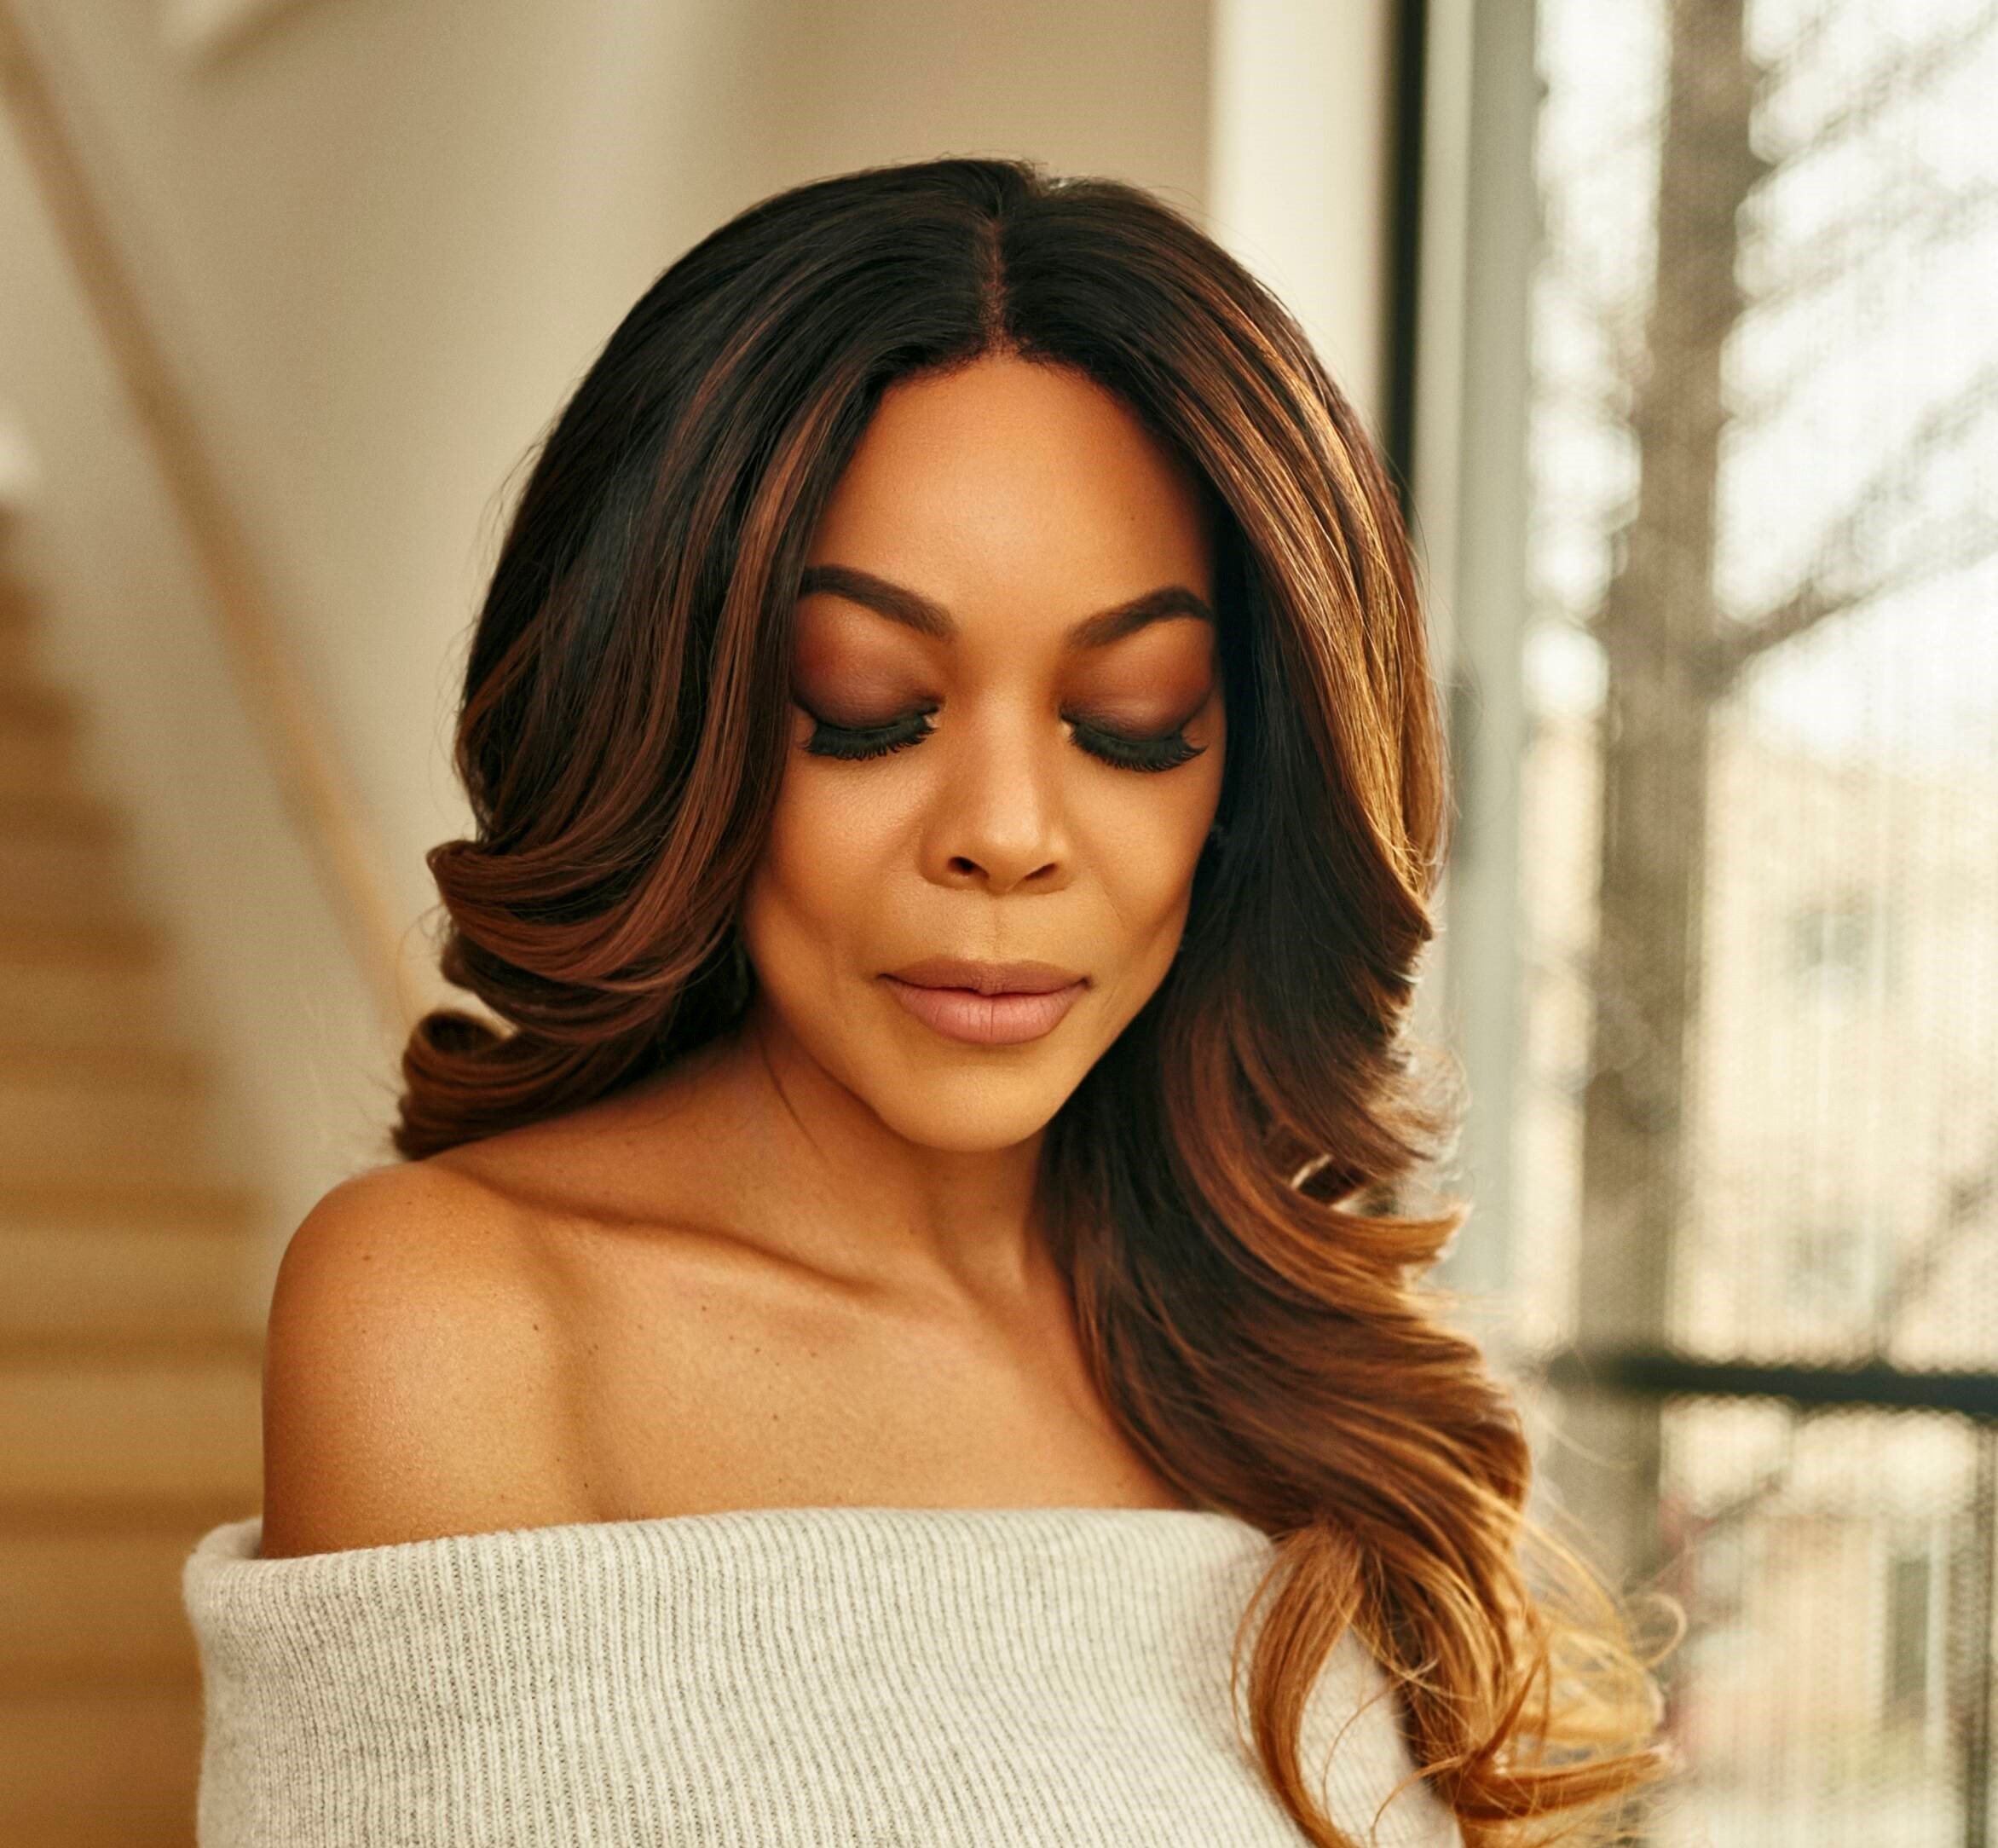 Wendy Williams Sets the Record Straight at the Duke Energy Center for the Arts – Mahaffey Theater August 2nd